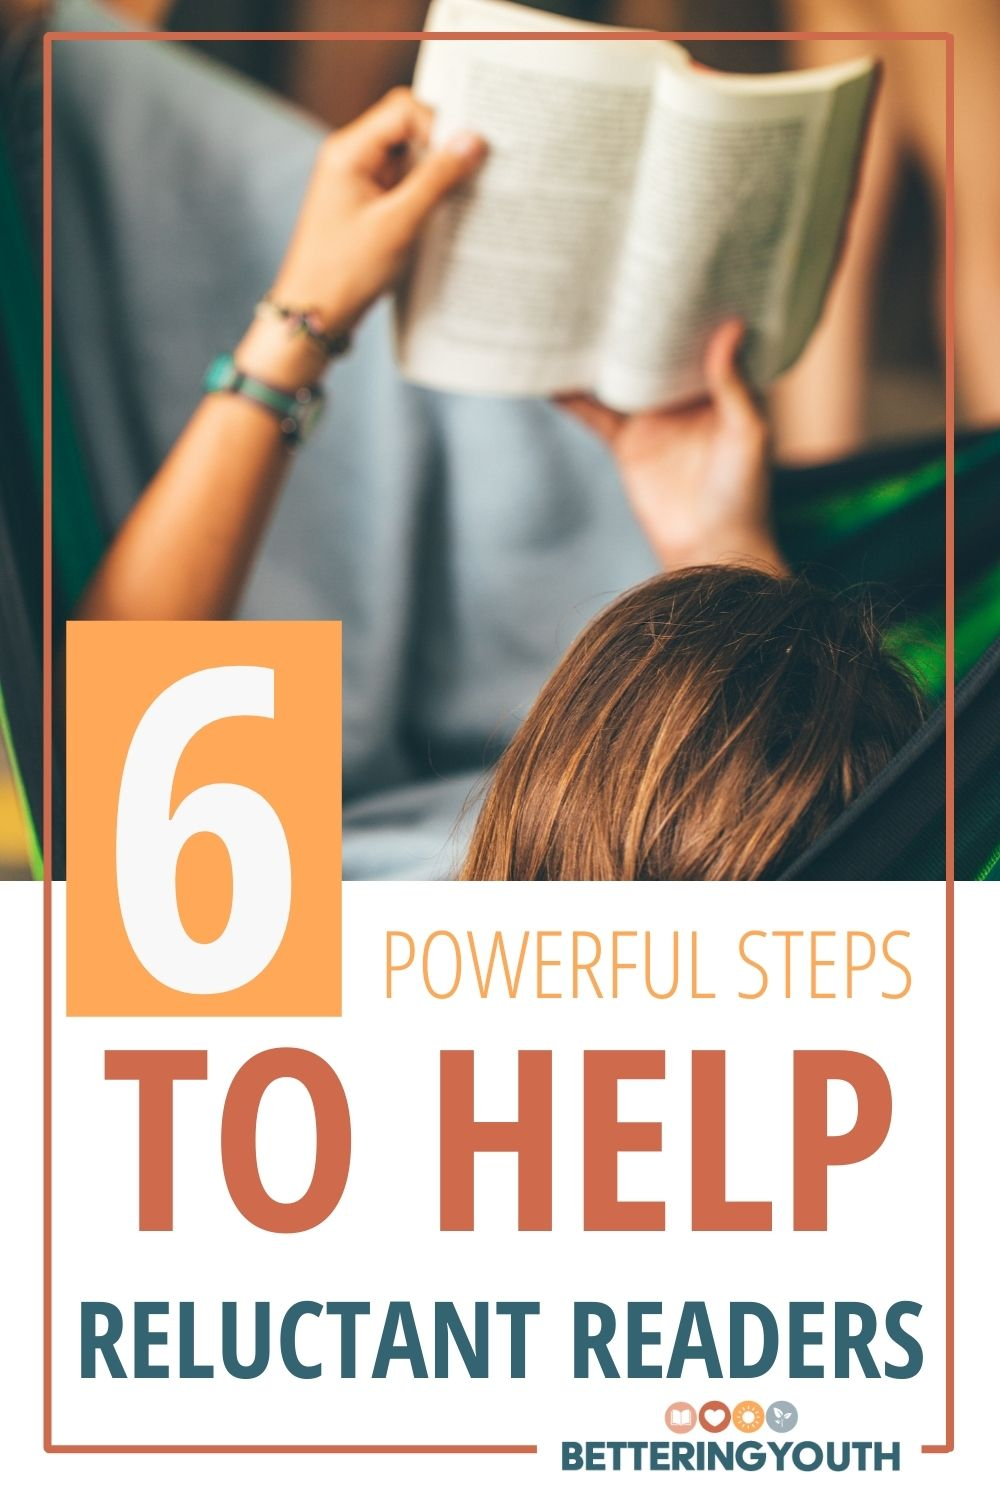 6 Powerful Steps to Support Reluctant and Struggling Readers